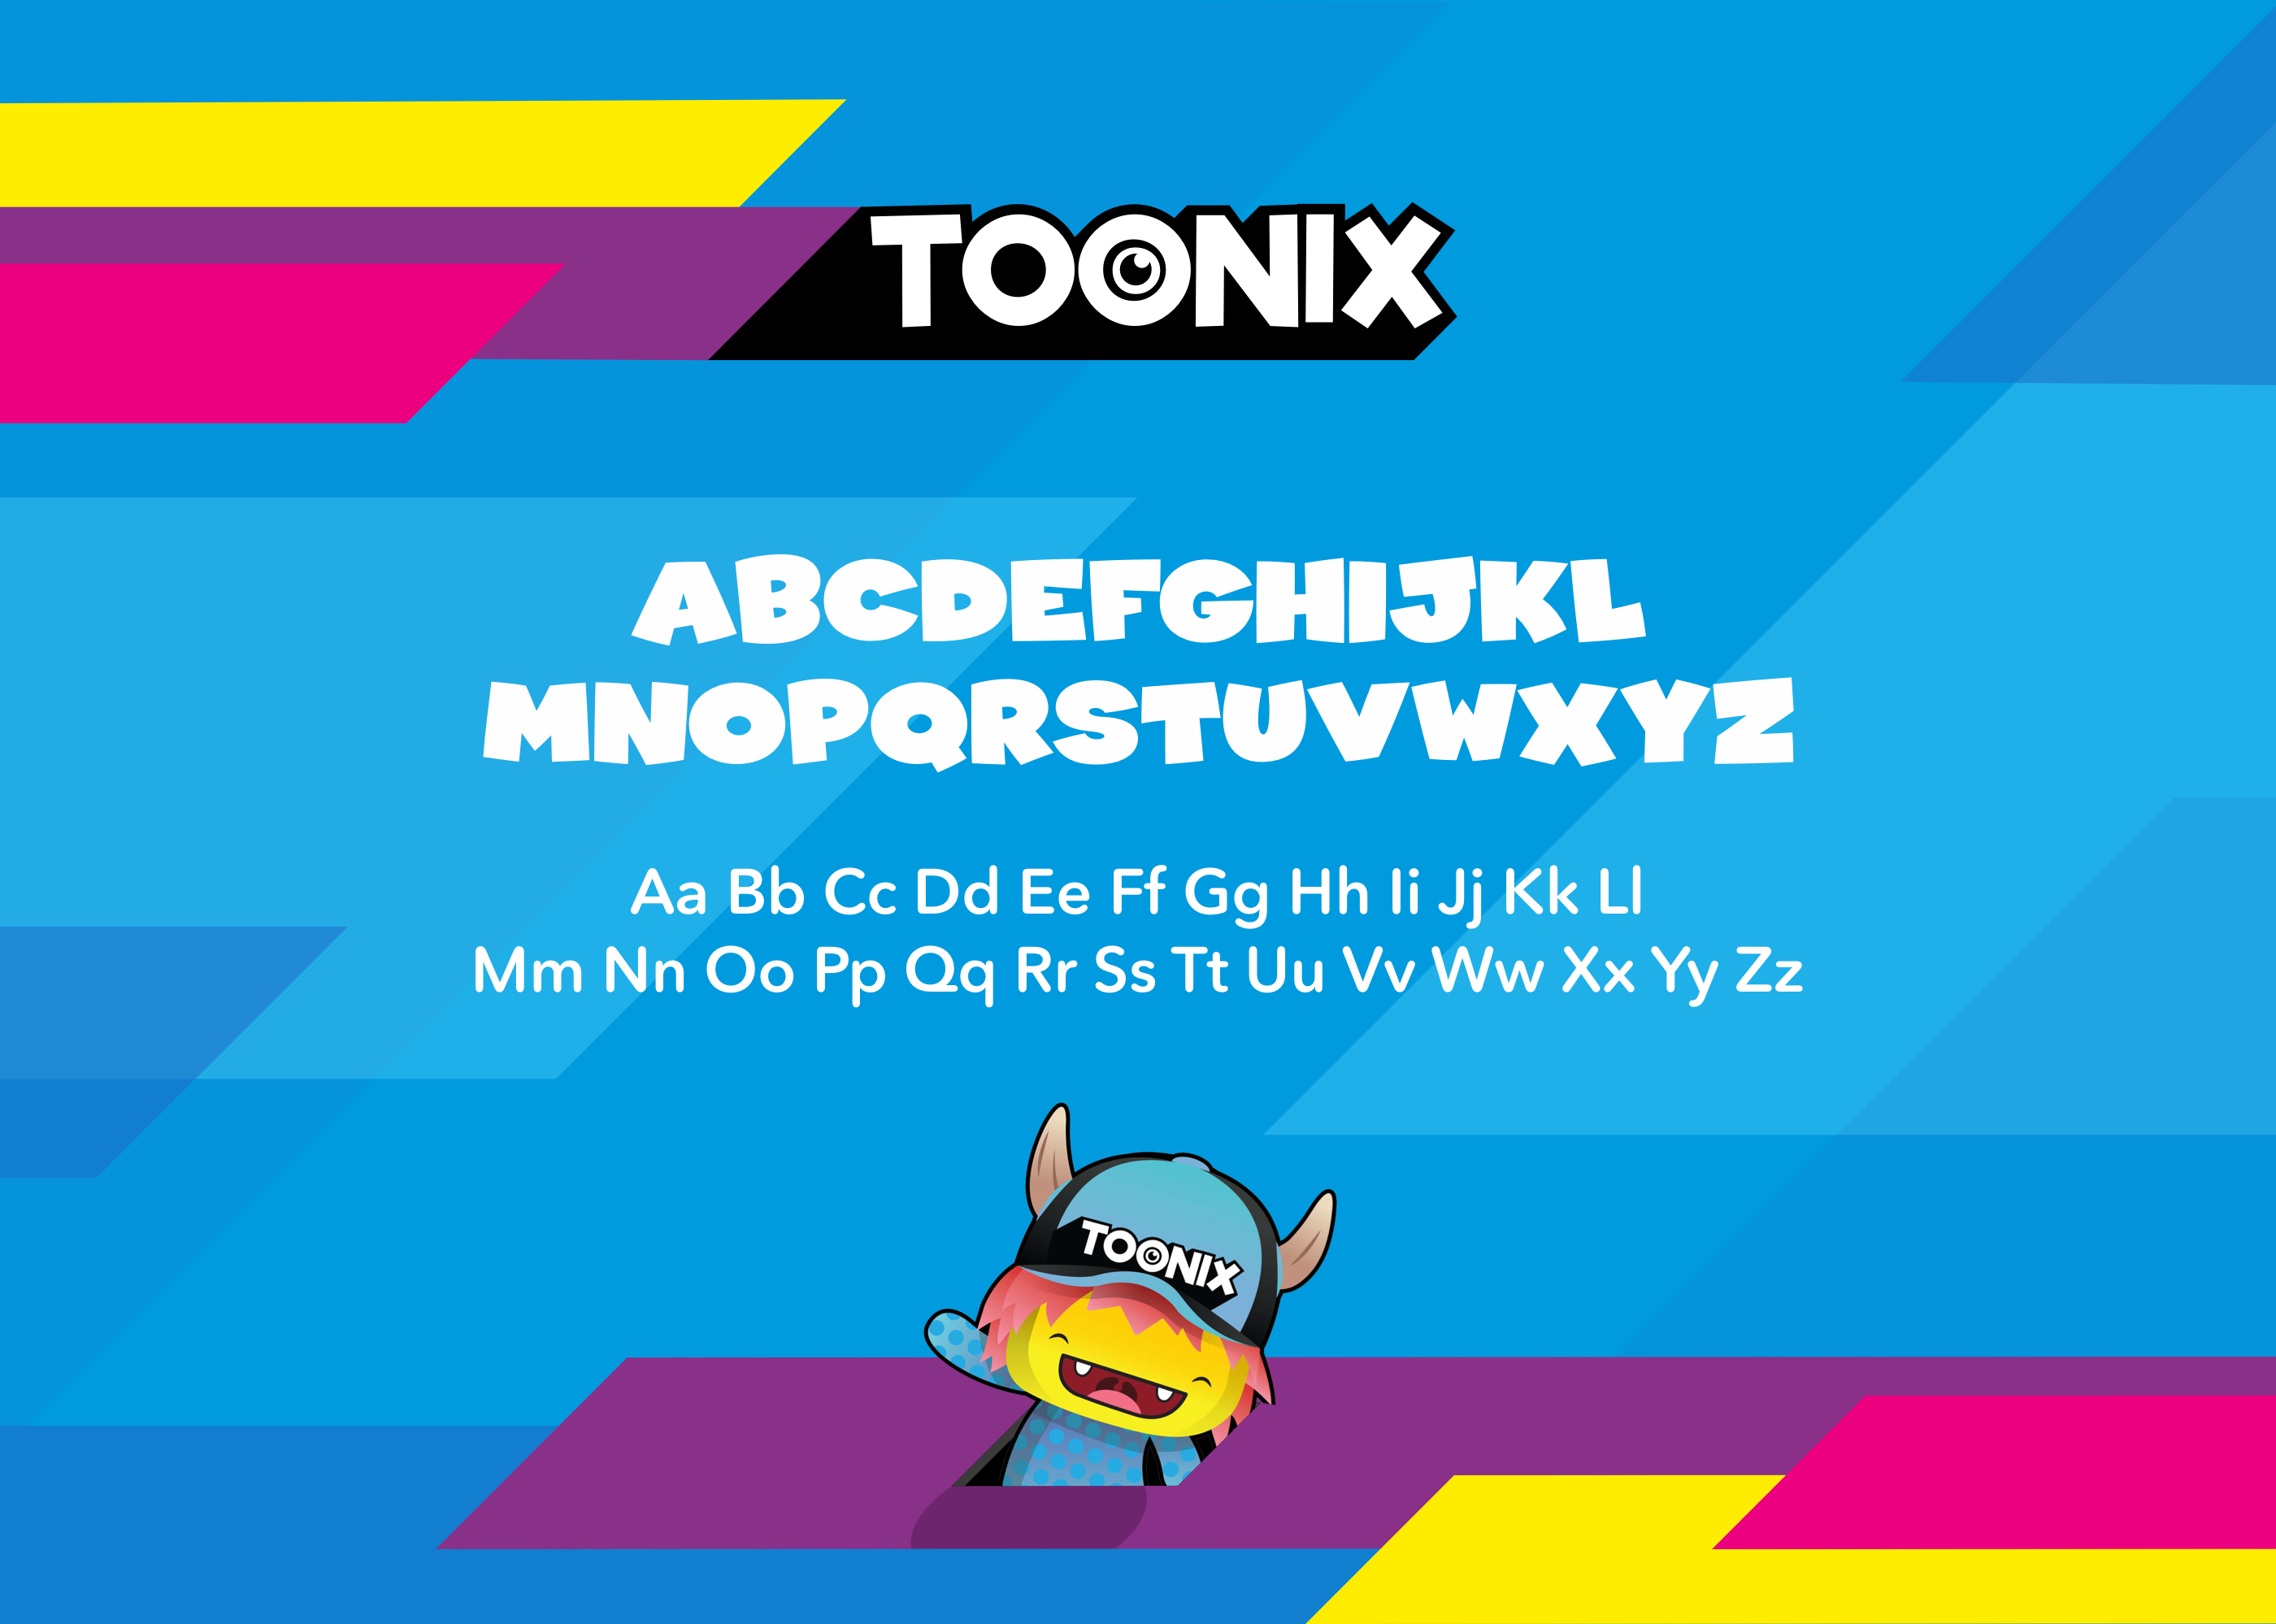 Toonix logo, fonts, colours and shards.